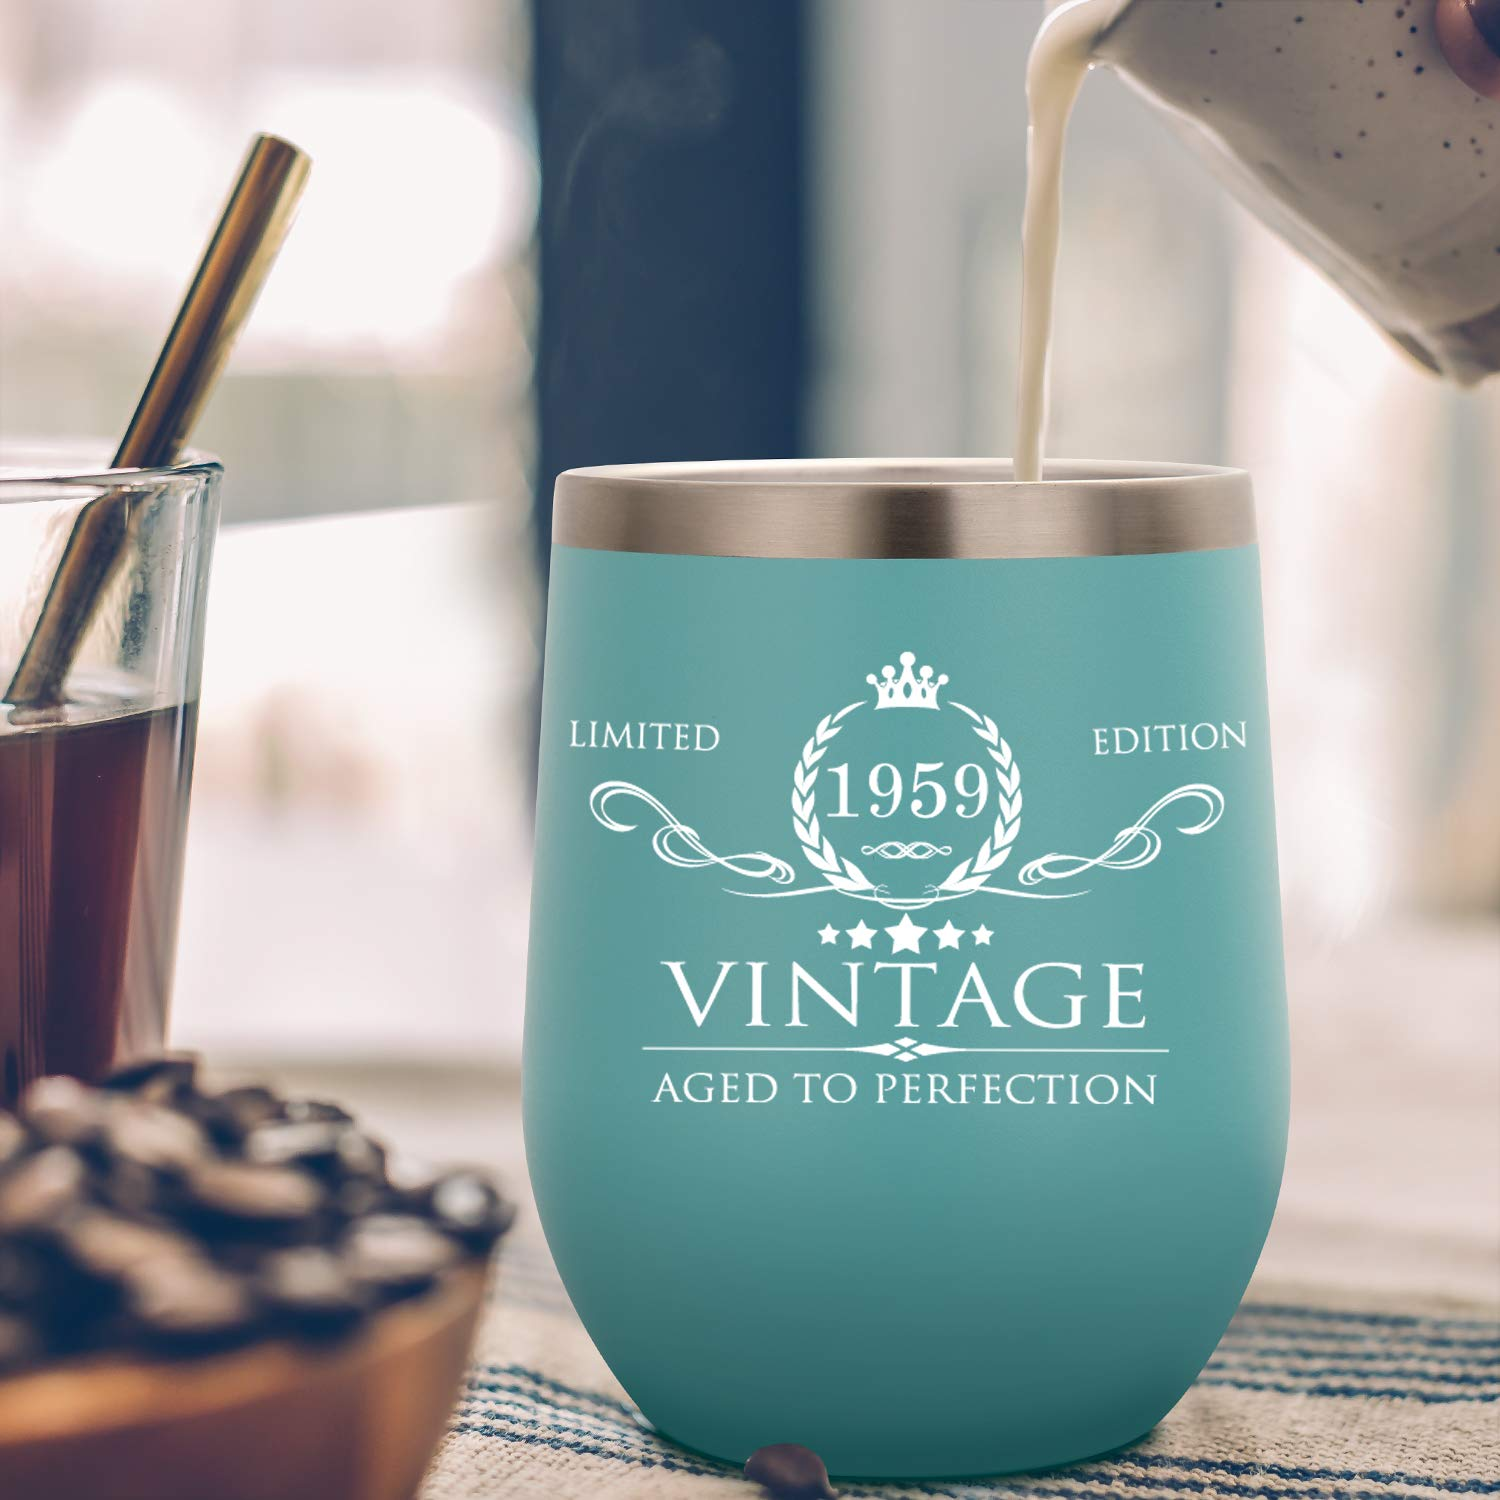 Wife 1959 60th Birthday Gifts for Women and Men Insulated Wine Tumbler Funny 60th Anniversary Gifts Idea Husband Decorations for Her//Him Mom Dad 12oz Mint Double Wall Vacuum Cup with Lid